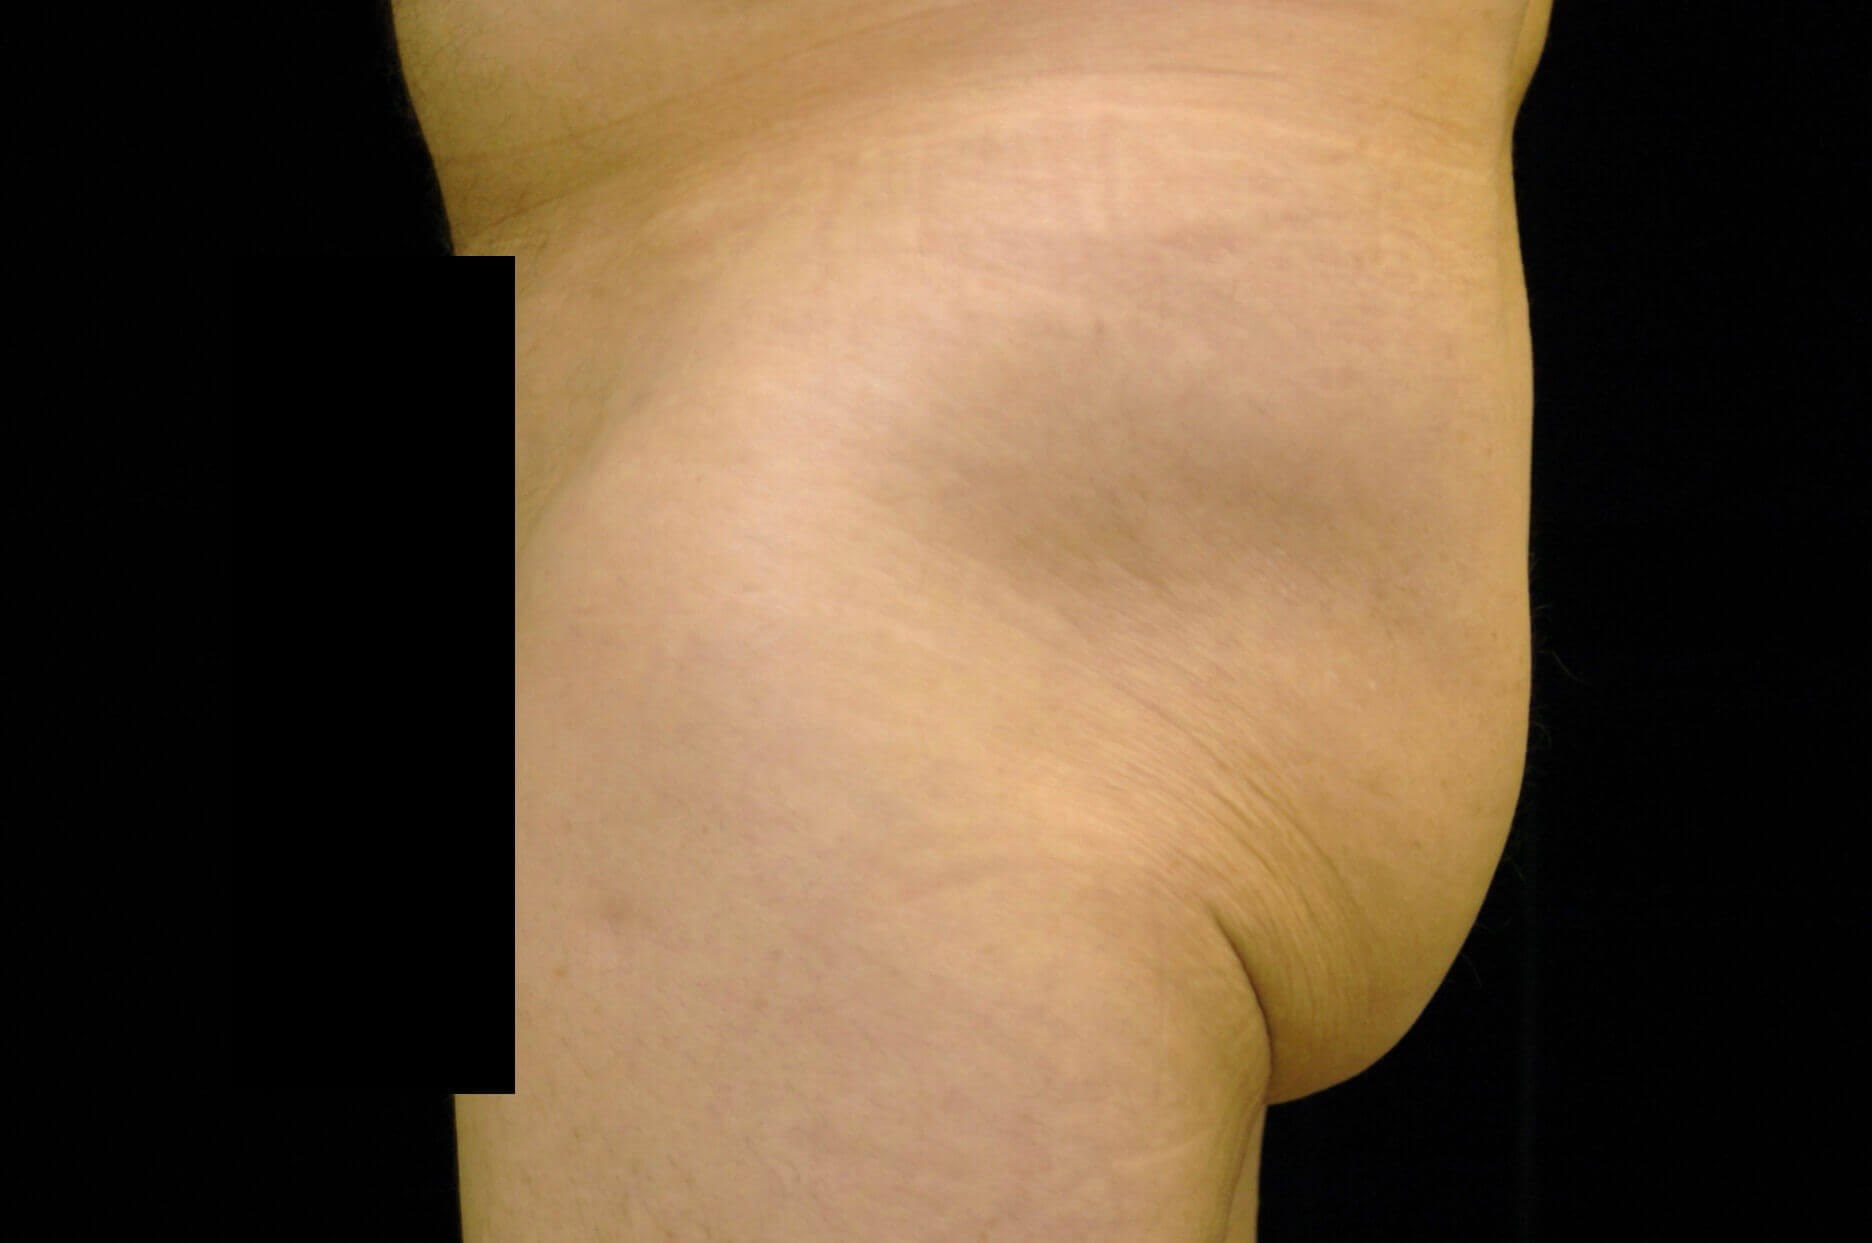 DALLAS MAN HAS BUTTOCK AUGMENTATION AND LIPOSUCTION SURGERY